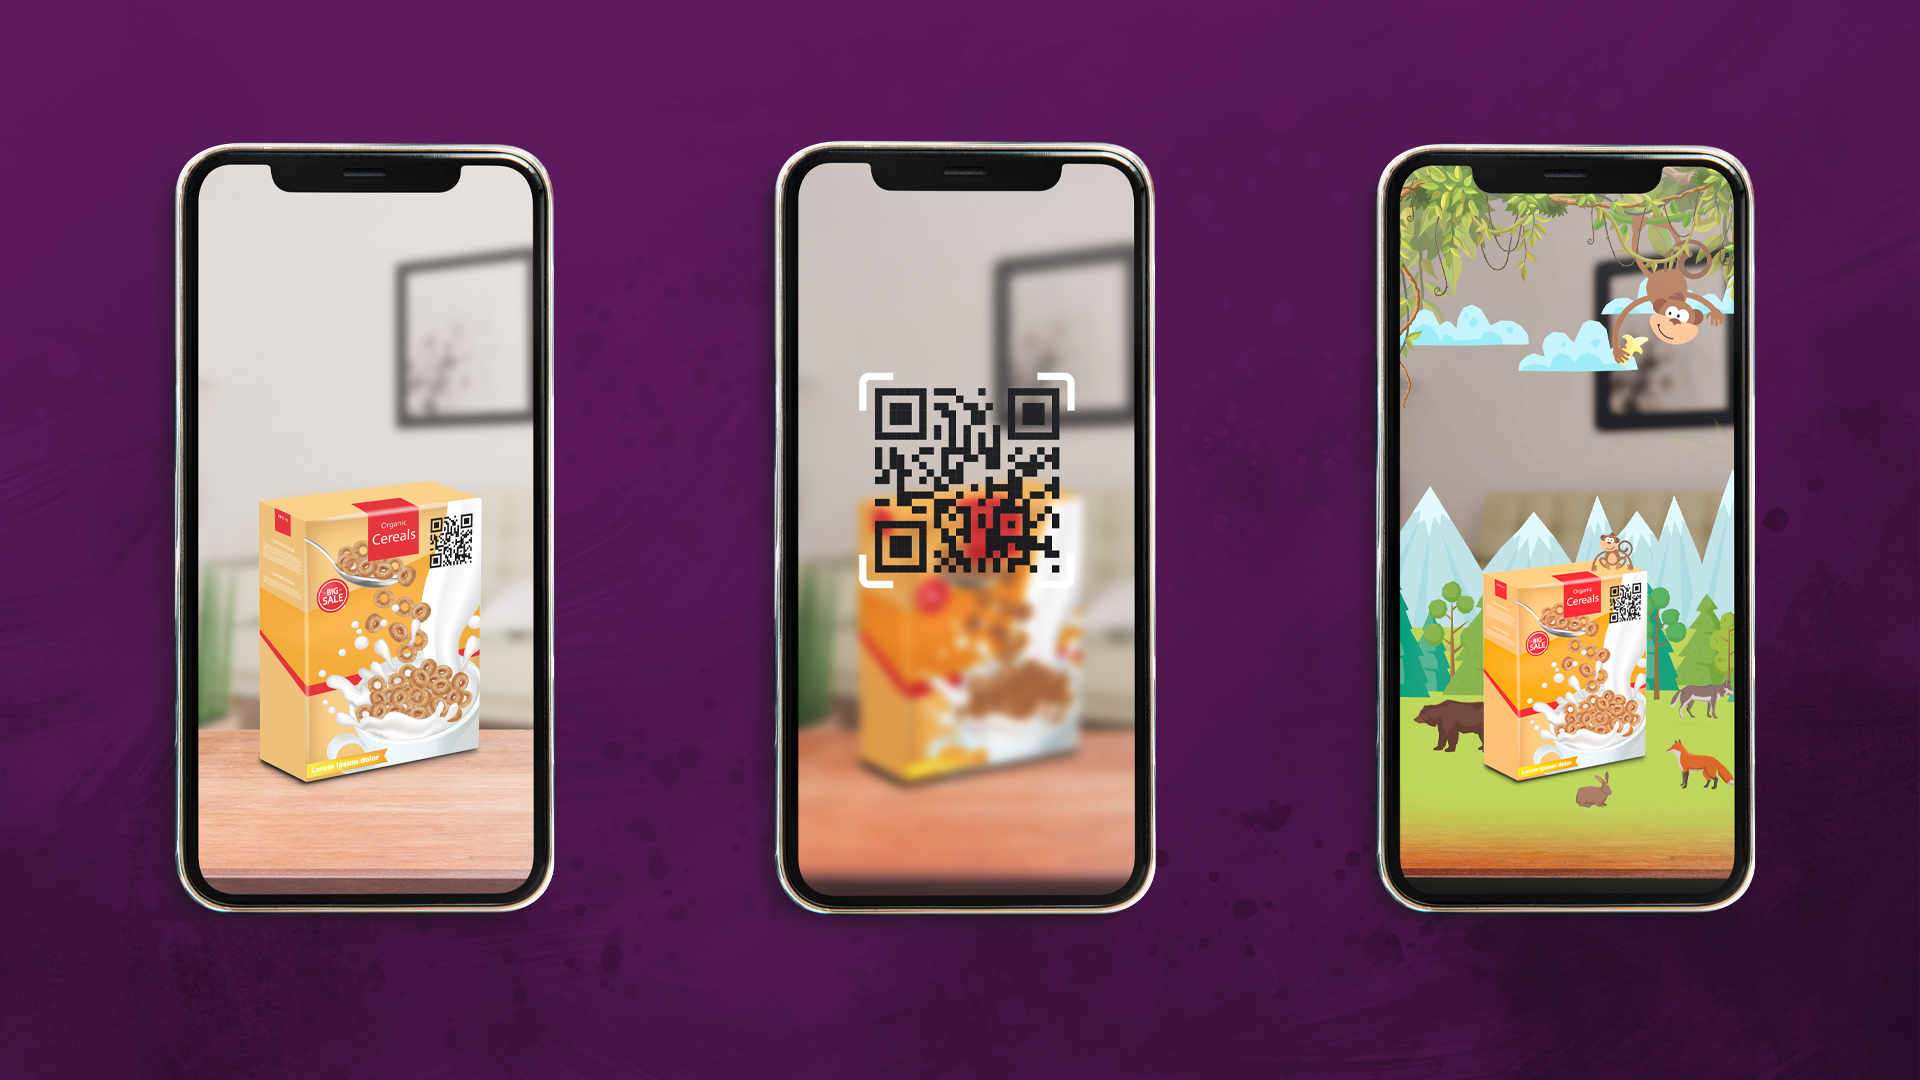 Qr scan augmented reality